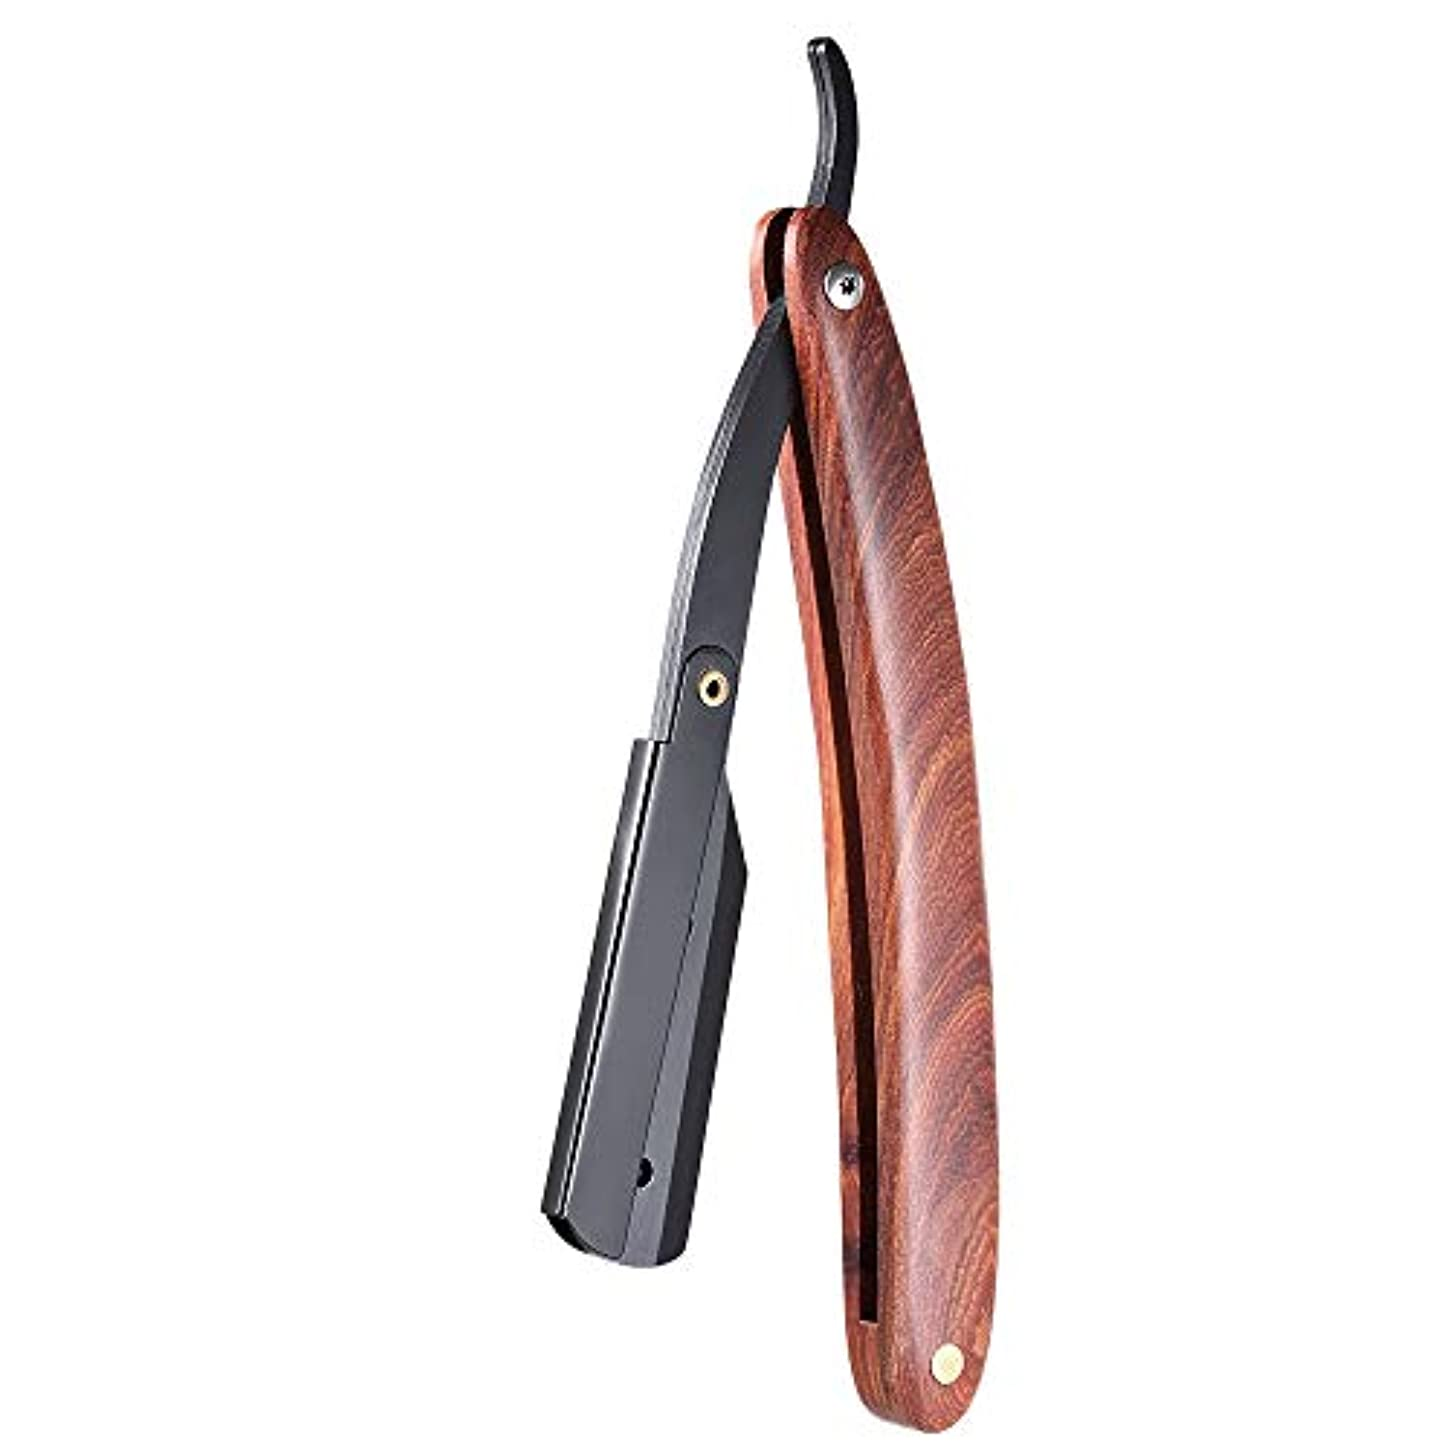 死ぬルール招待Men Shaving Straight Edge Razor Stainless Steel Manual Razor Wooden Handle Folding Shaving Knife Shave Beard Cutter...